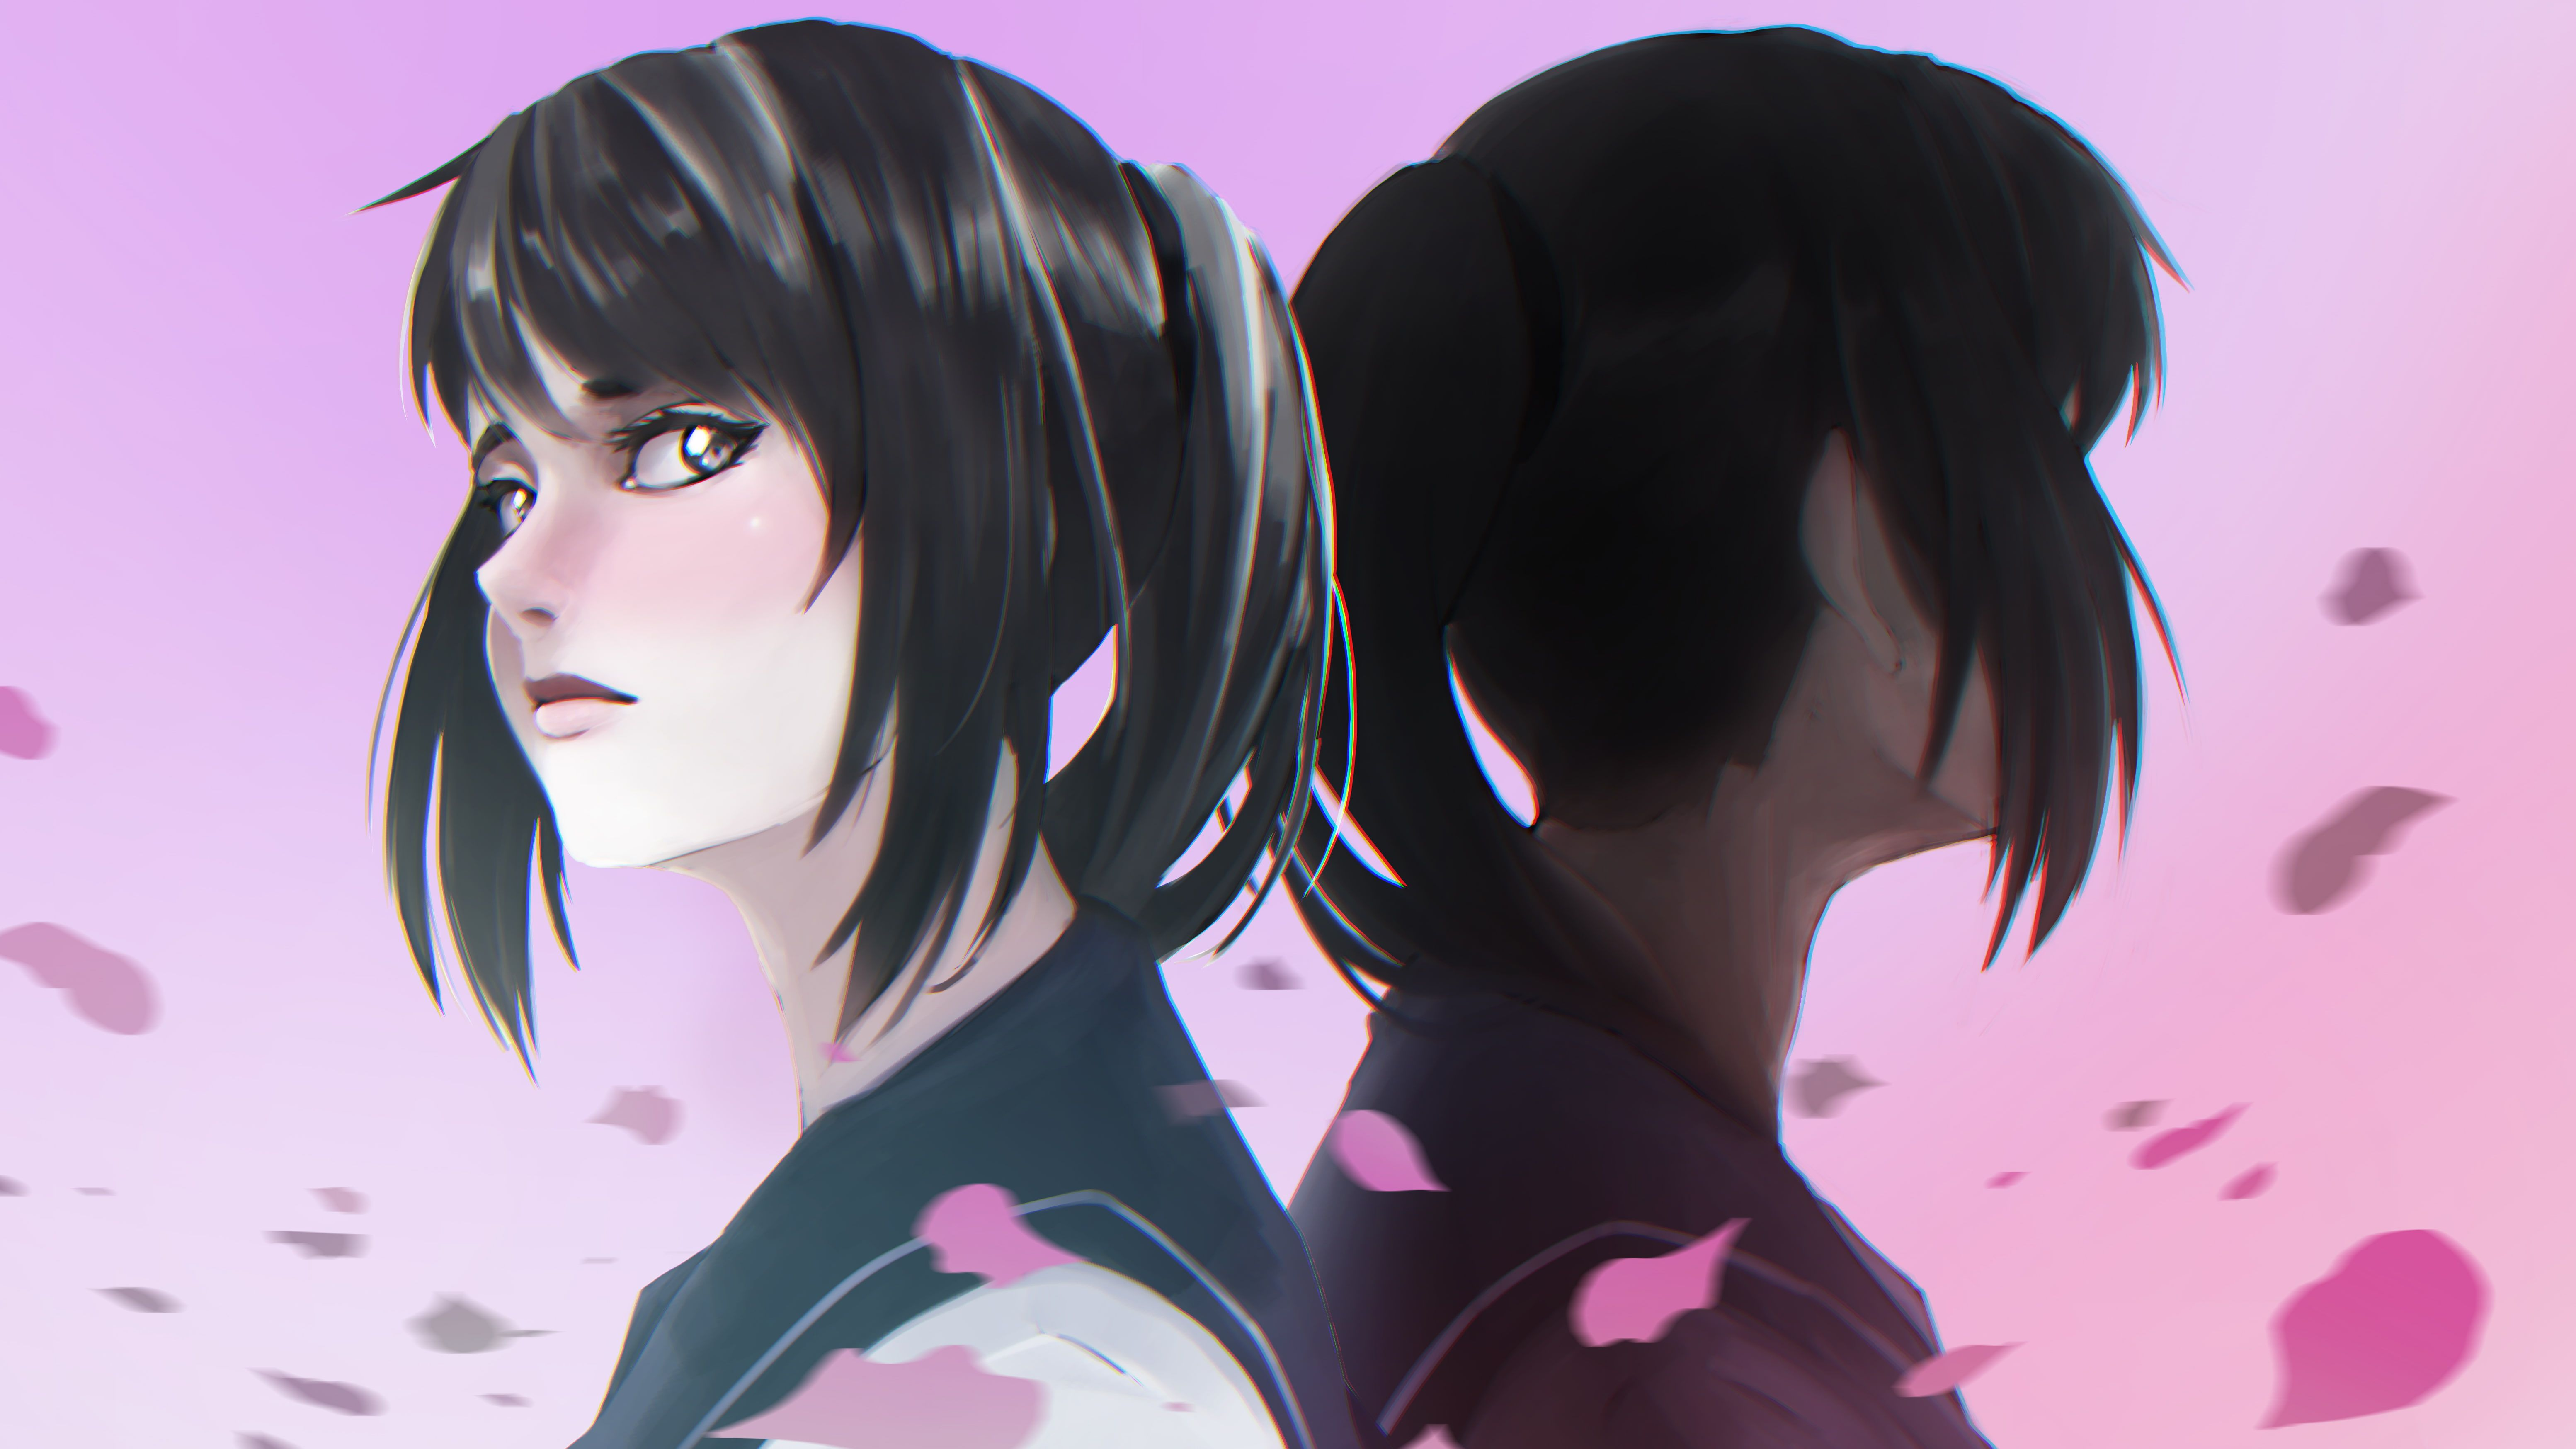 Yandere Simulator Yandere Chan Anime Anime Girls Dark Eyes Dark Hair Purple Background 5k Wallpaper Hdwallpaper De Yandere Simulator Yandere Yandere Girl